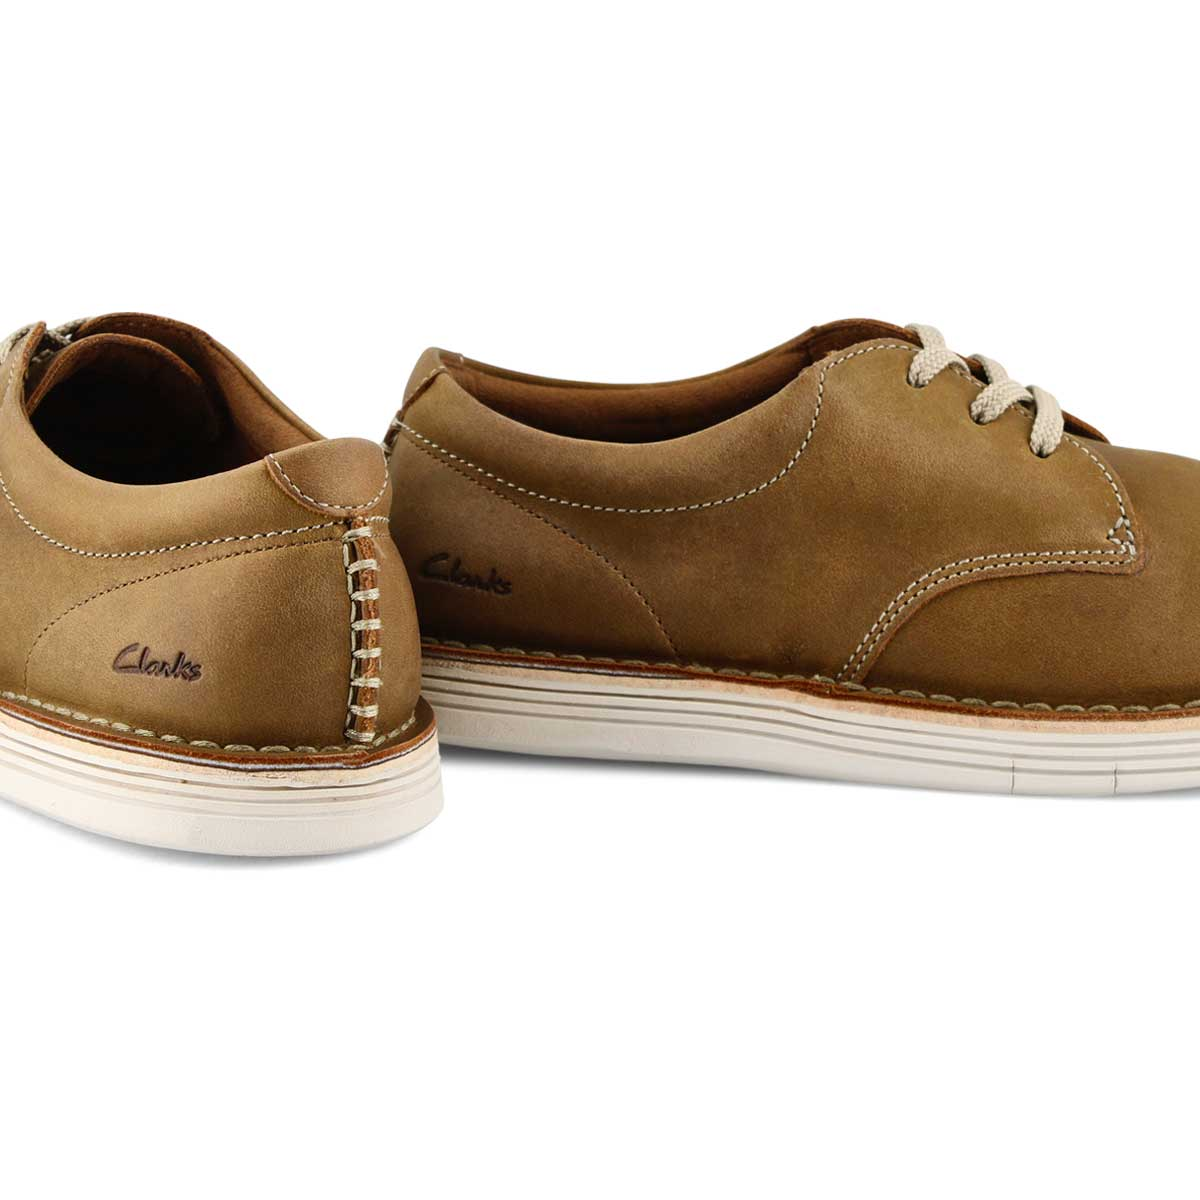 Men's Forge Vibe Casual Oxford - Tan